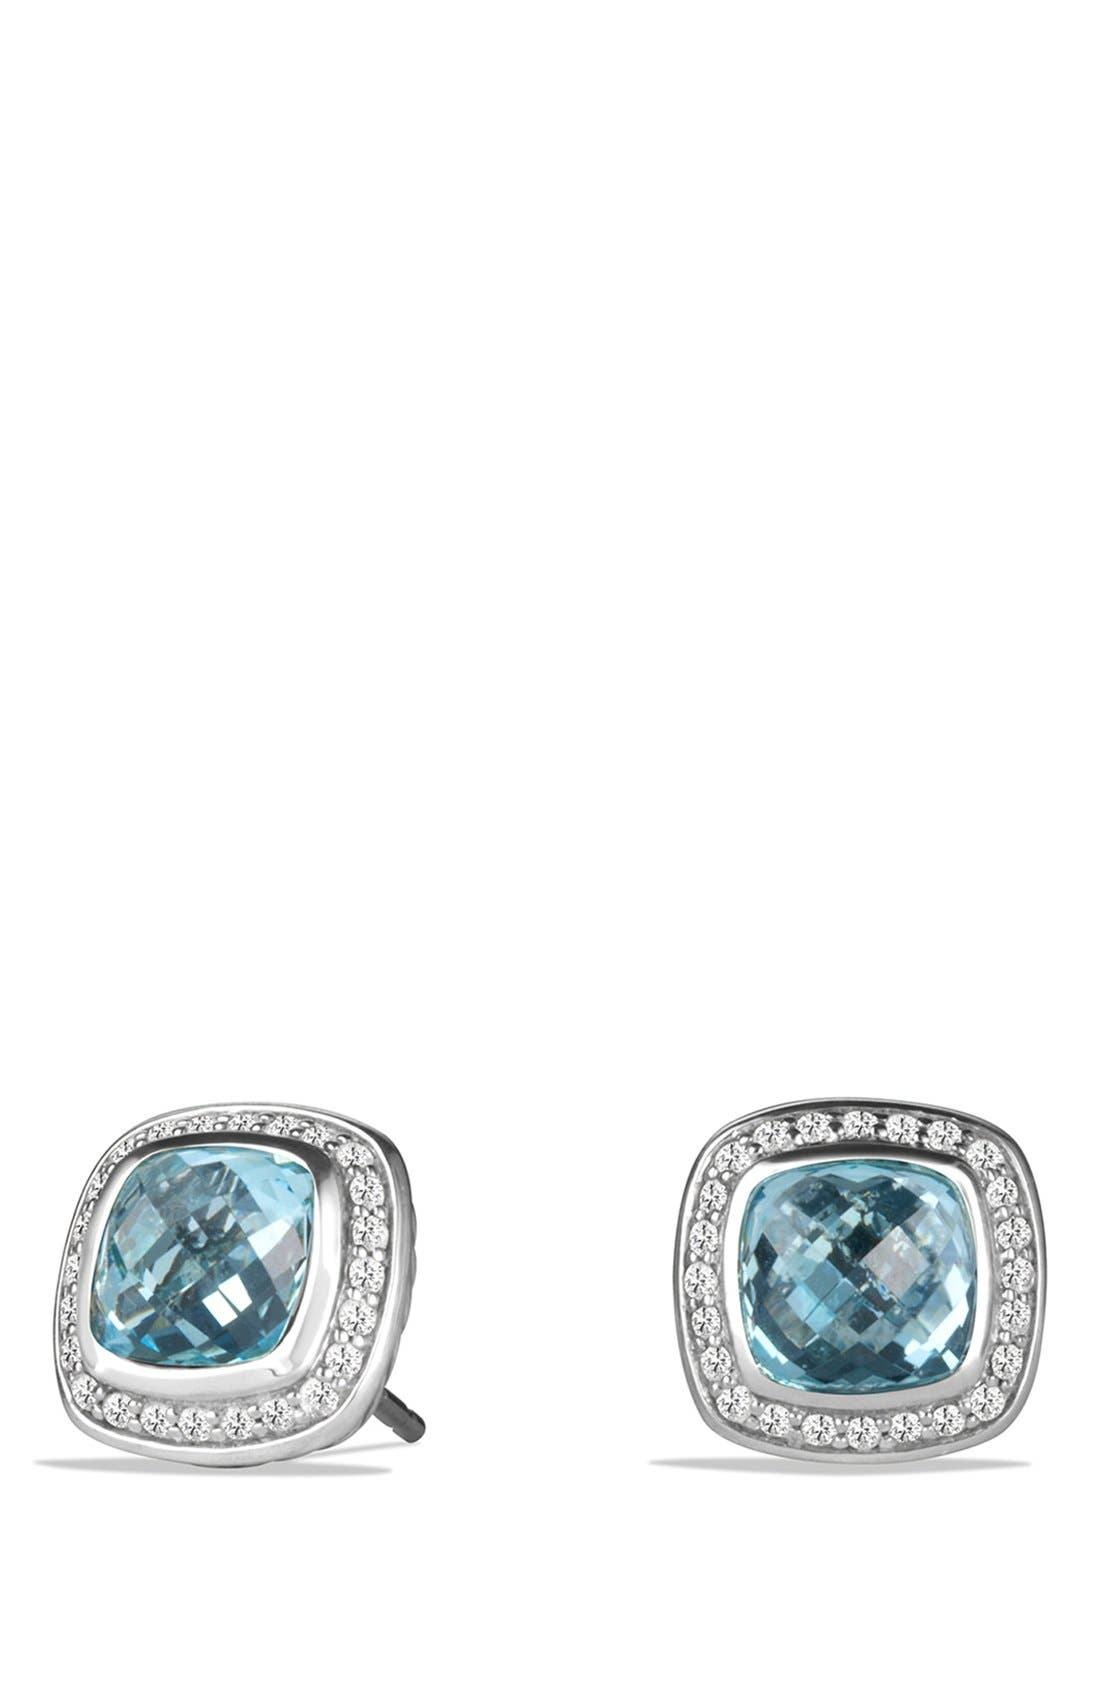 Alternate Image 1 Selected - David Yurman 'Albion' Earrings with Semiprecious Stone and Diamonds